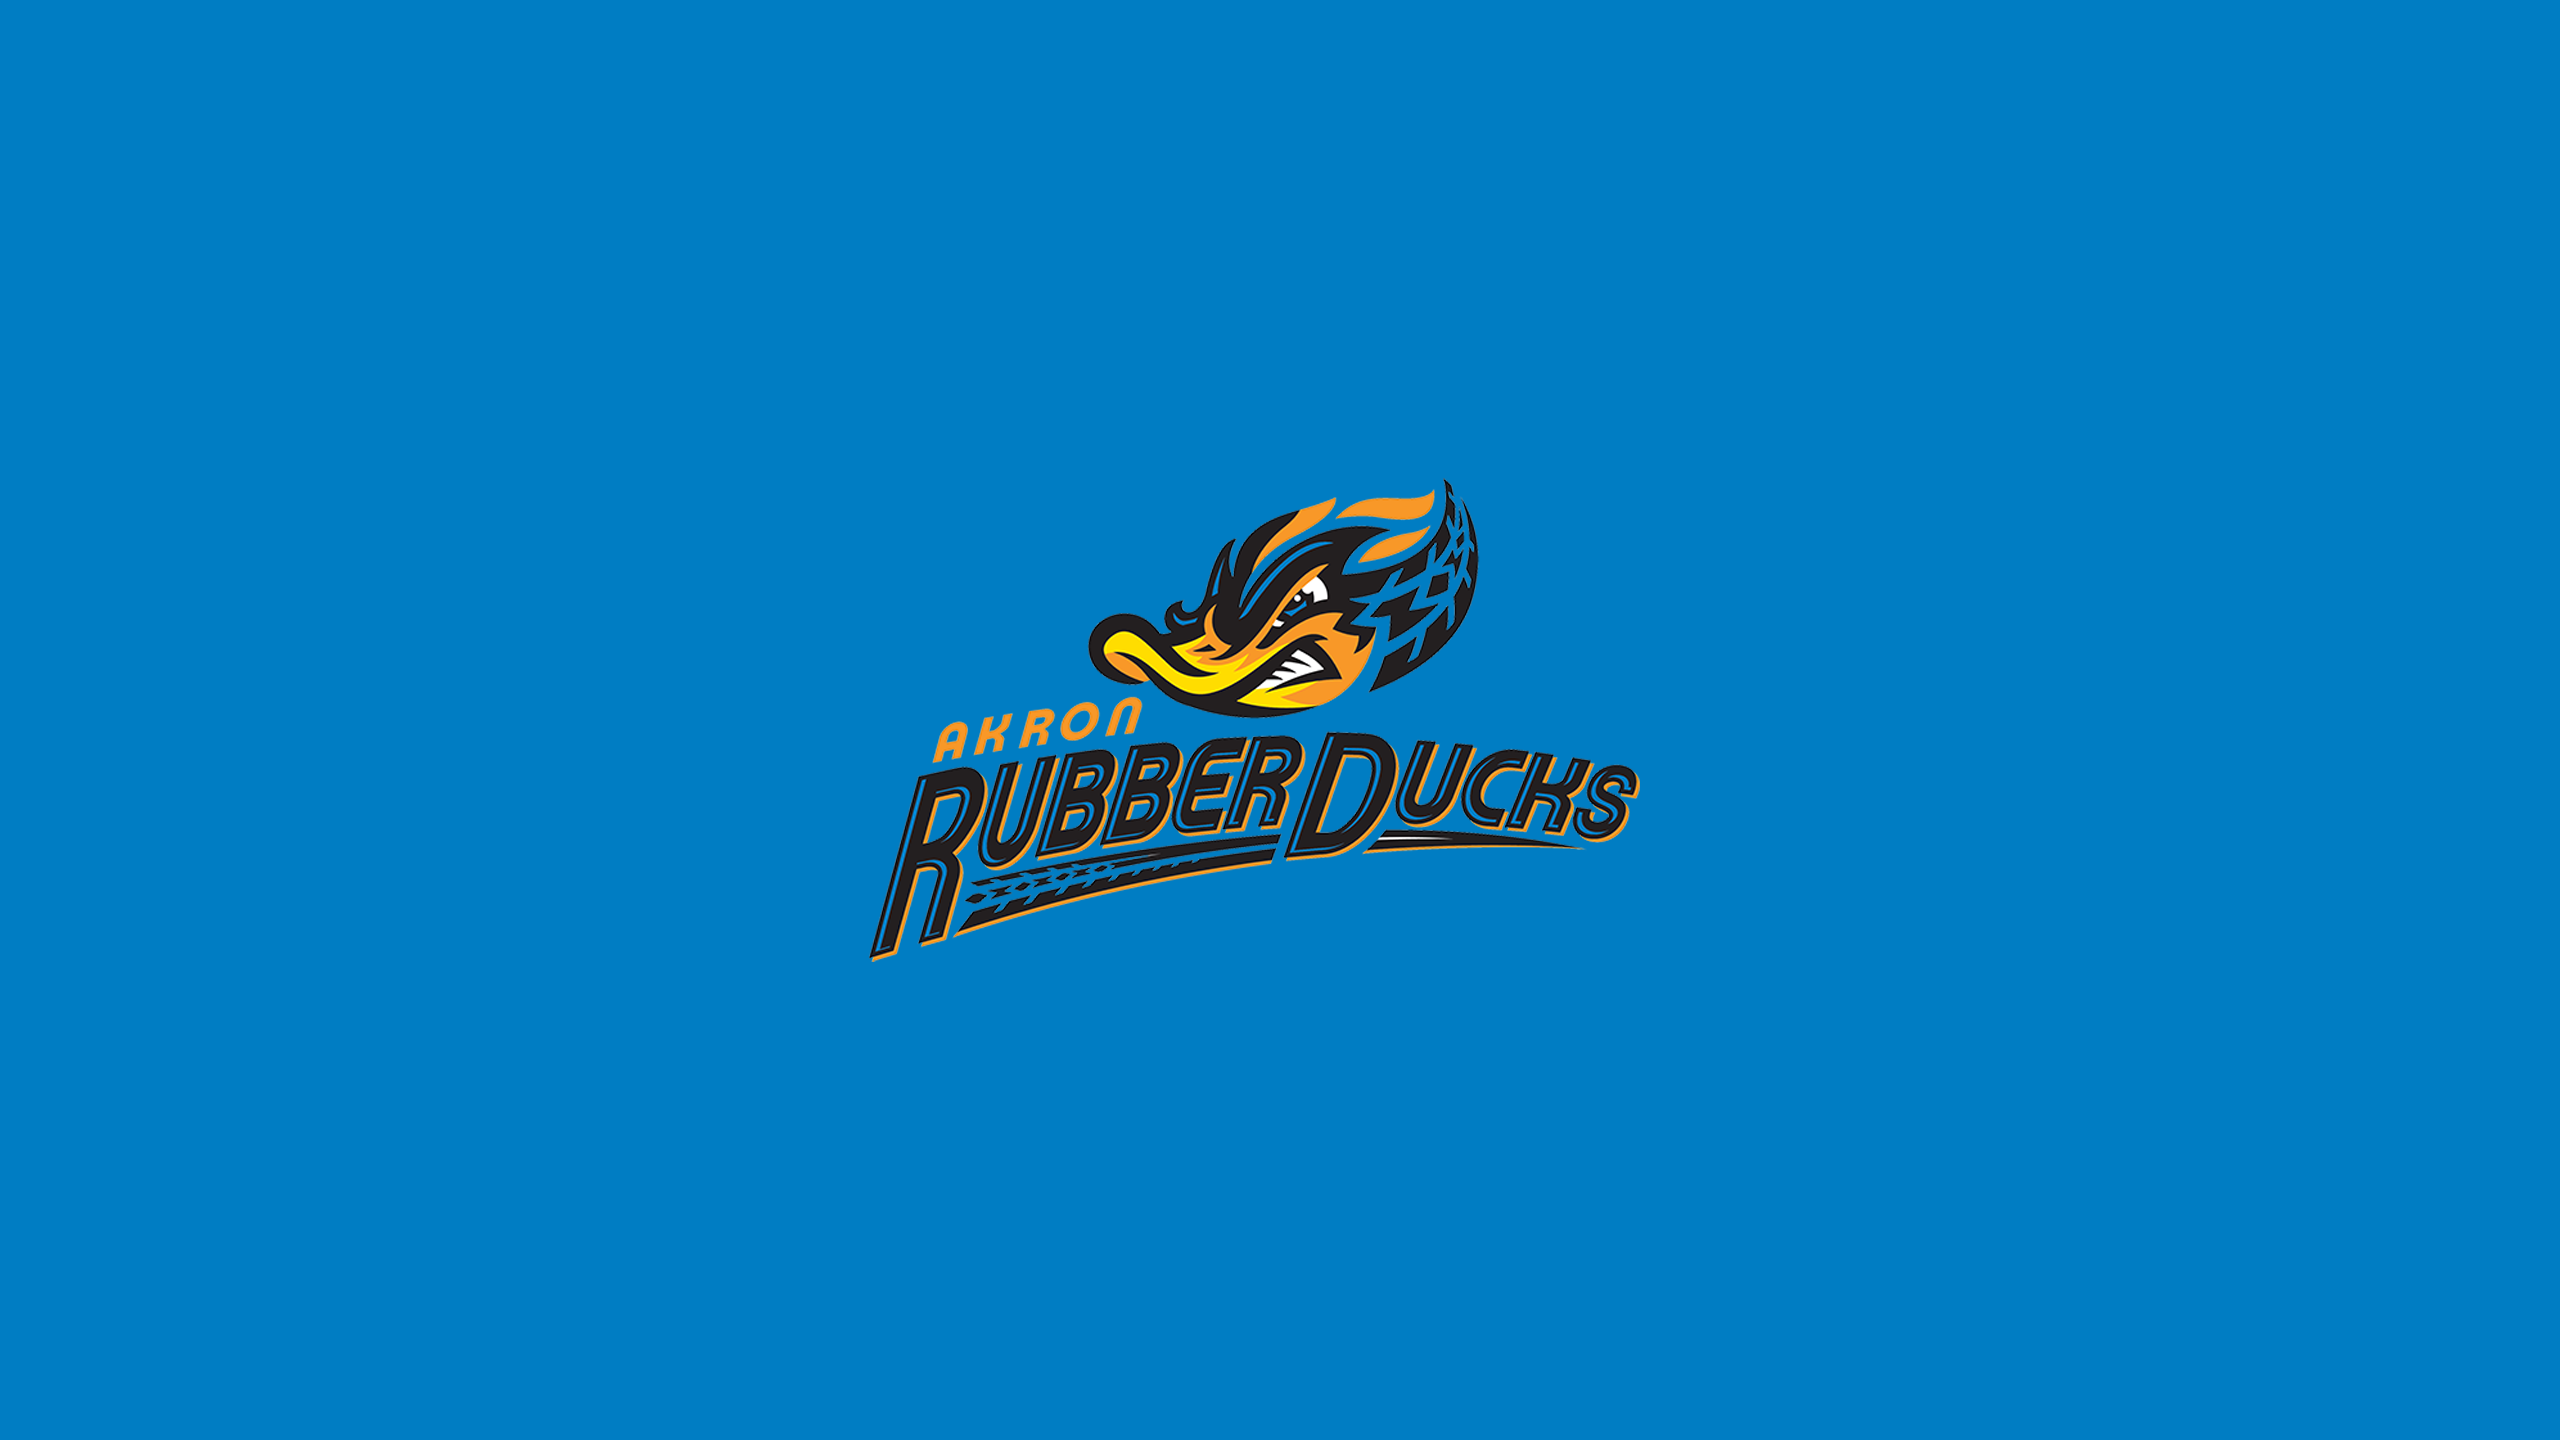 Akron (OH) Rubber Ducks